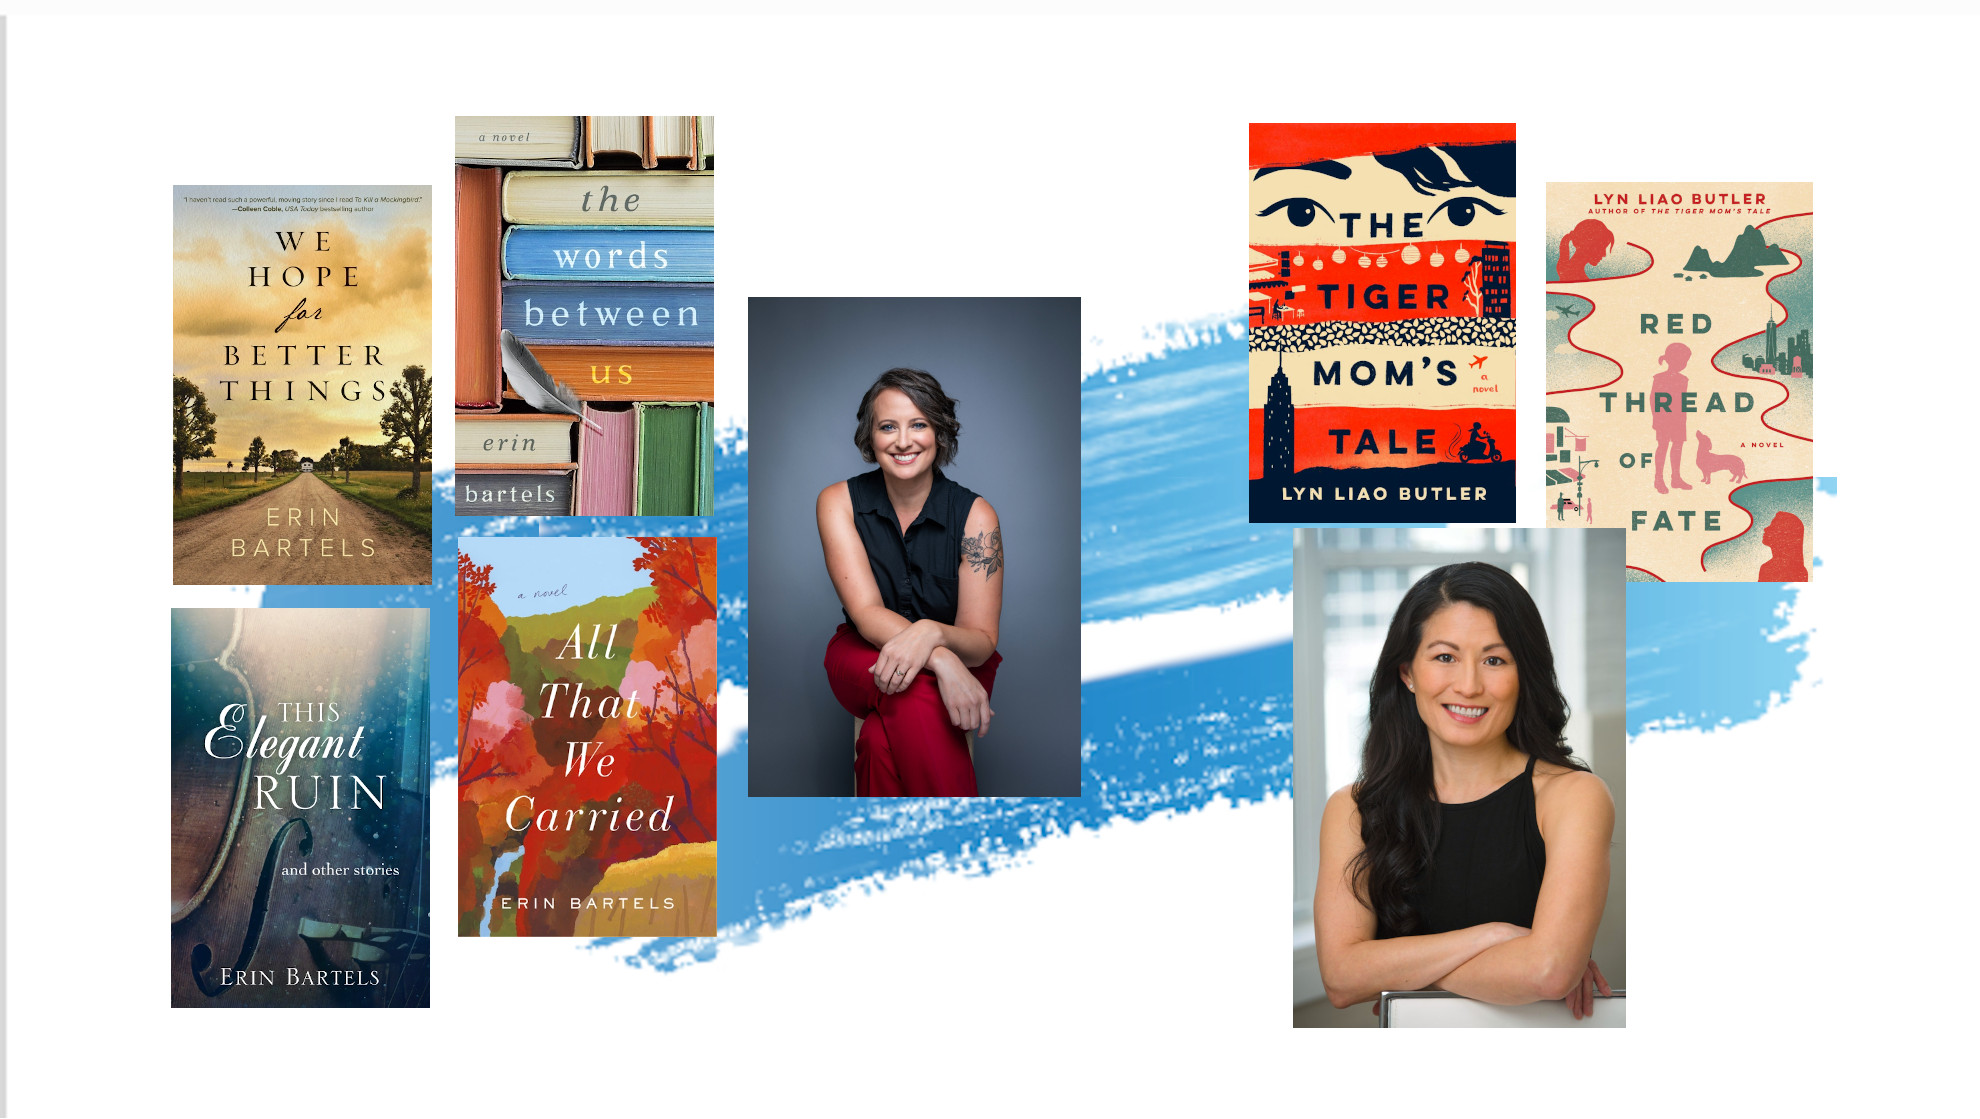 Books by Erin Bartels and Lynn Liao Butler